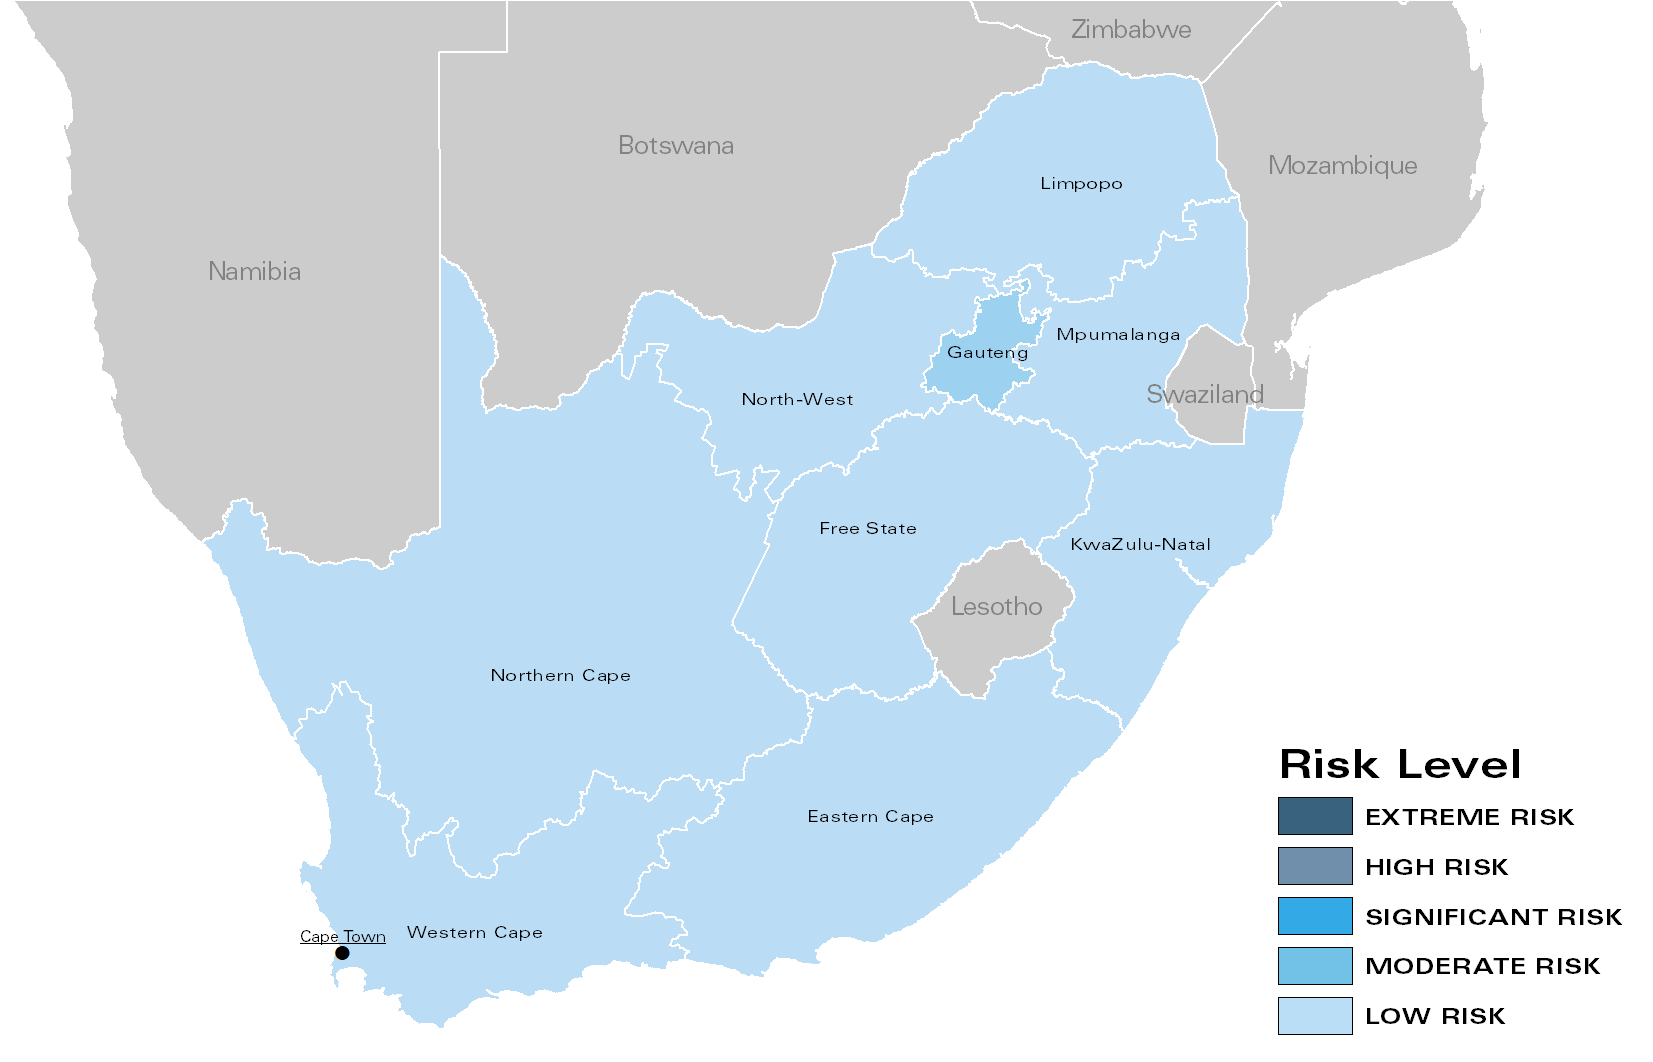 Fig. 1: Regional Risk Levels for South Africa (opposition) in February 2018